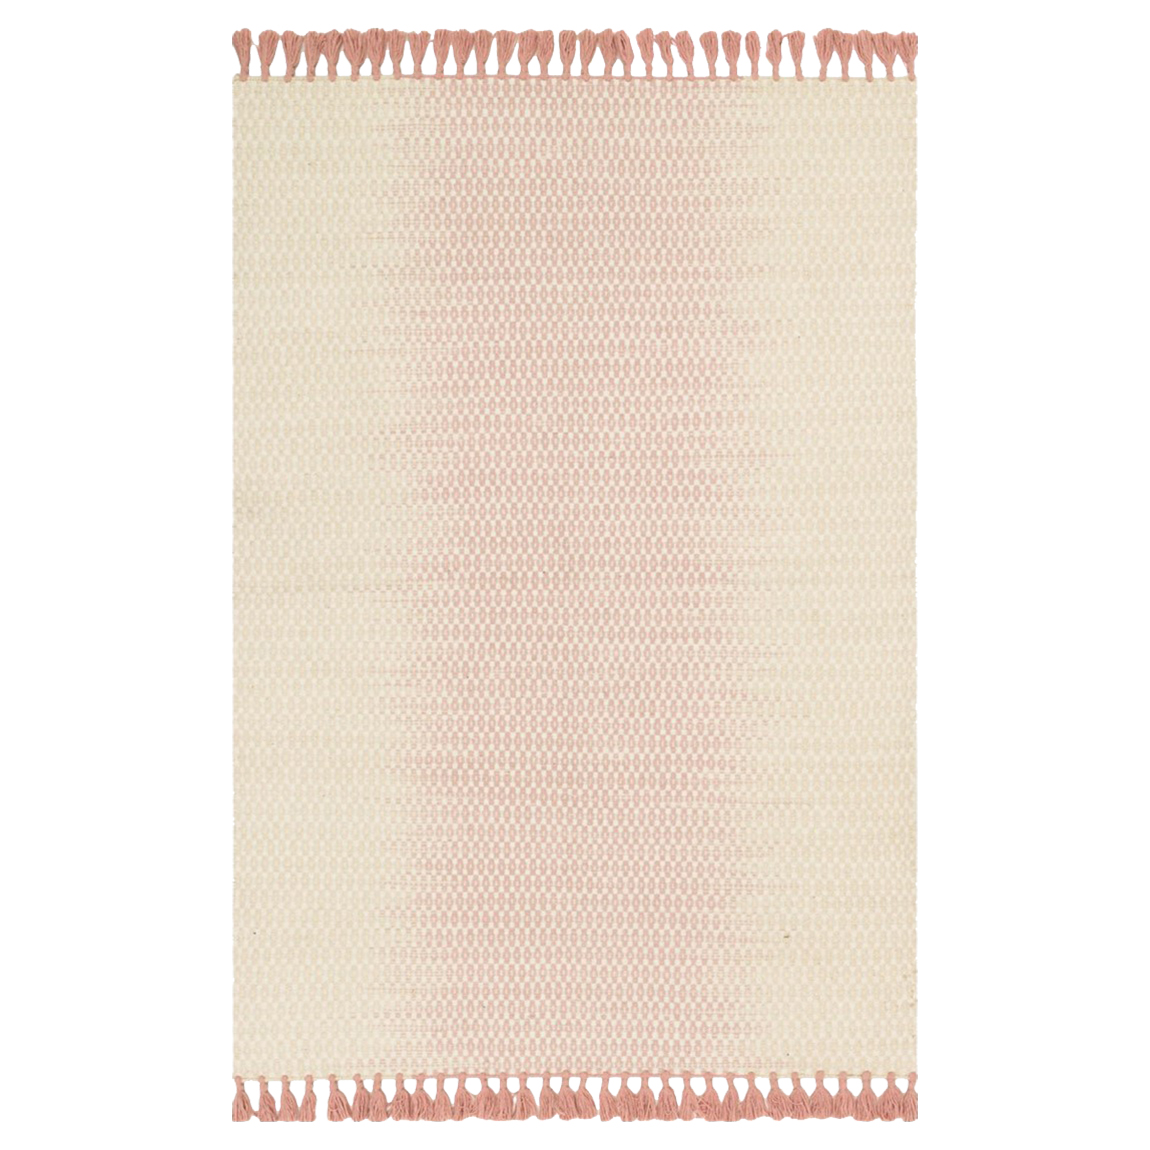 Tilly Global Rose Pink Ombre Woven Wool Rug - 7'9x9'9